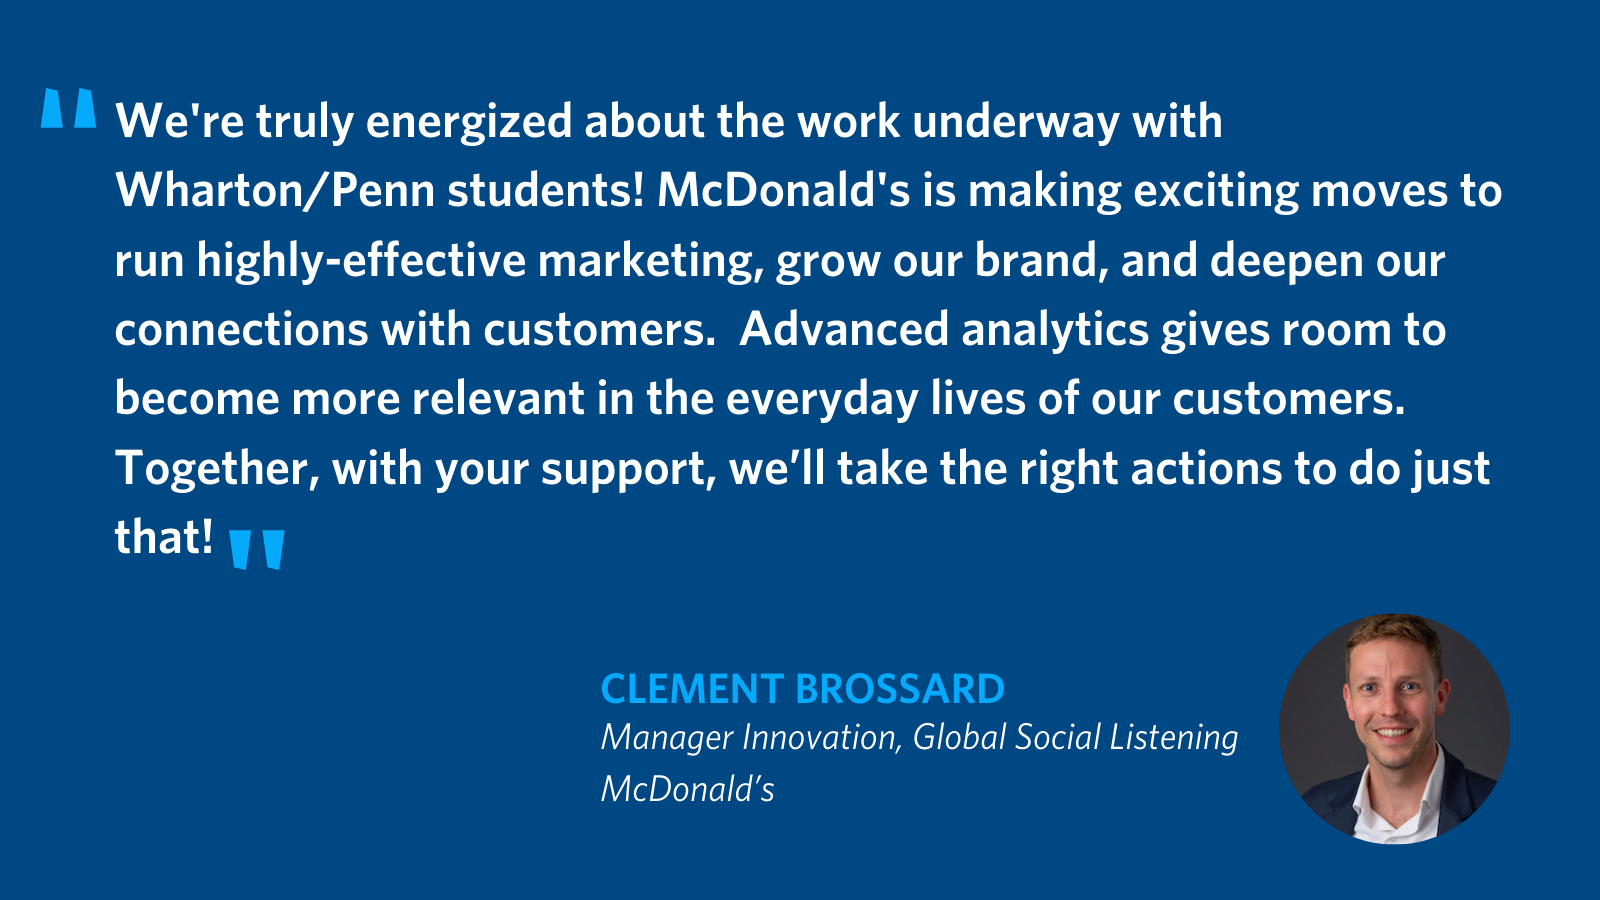 """We're truly energized about the work underway with Wharton/Penn students! McDonald's is making exciting moves to run highly effective marketing, grow our brand and deepen our connections with customers. Advanced analytics gives room to become more relevant in the everyday lives of our customers – and together with your support, we'll take the right actions to do just that!"" - Clement Brossard, Manager Innovation, Global Social Listening at McDonald's"